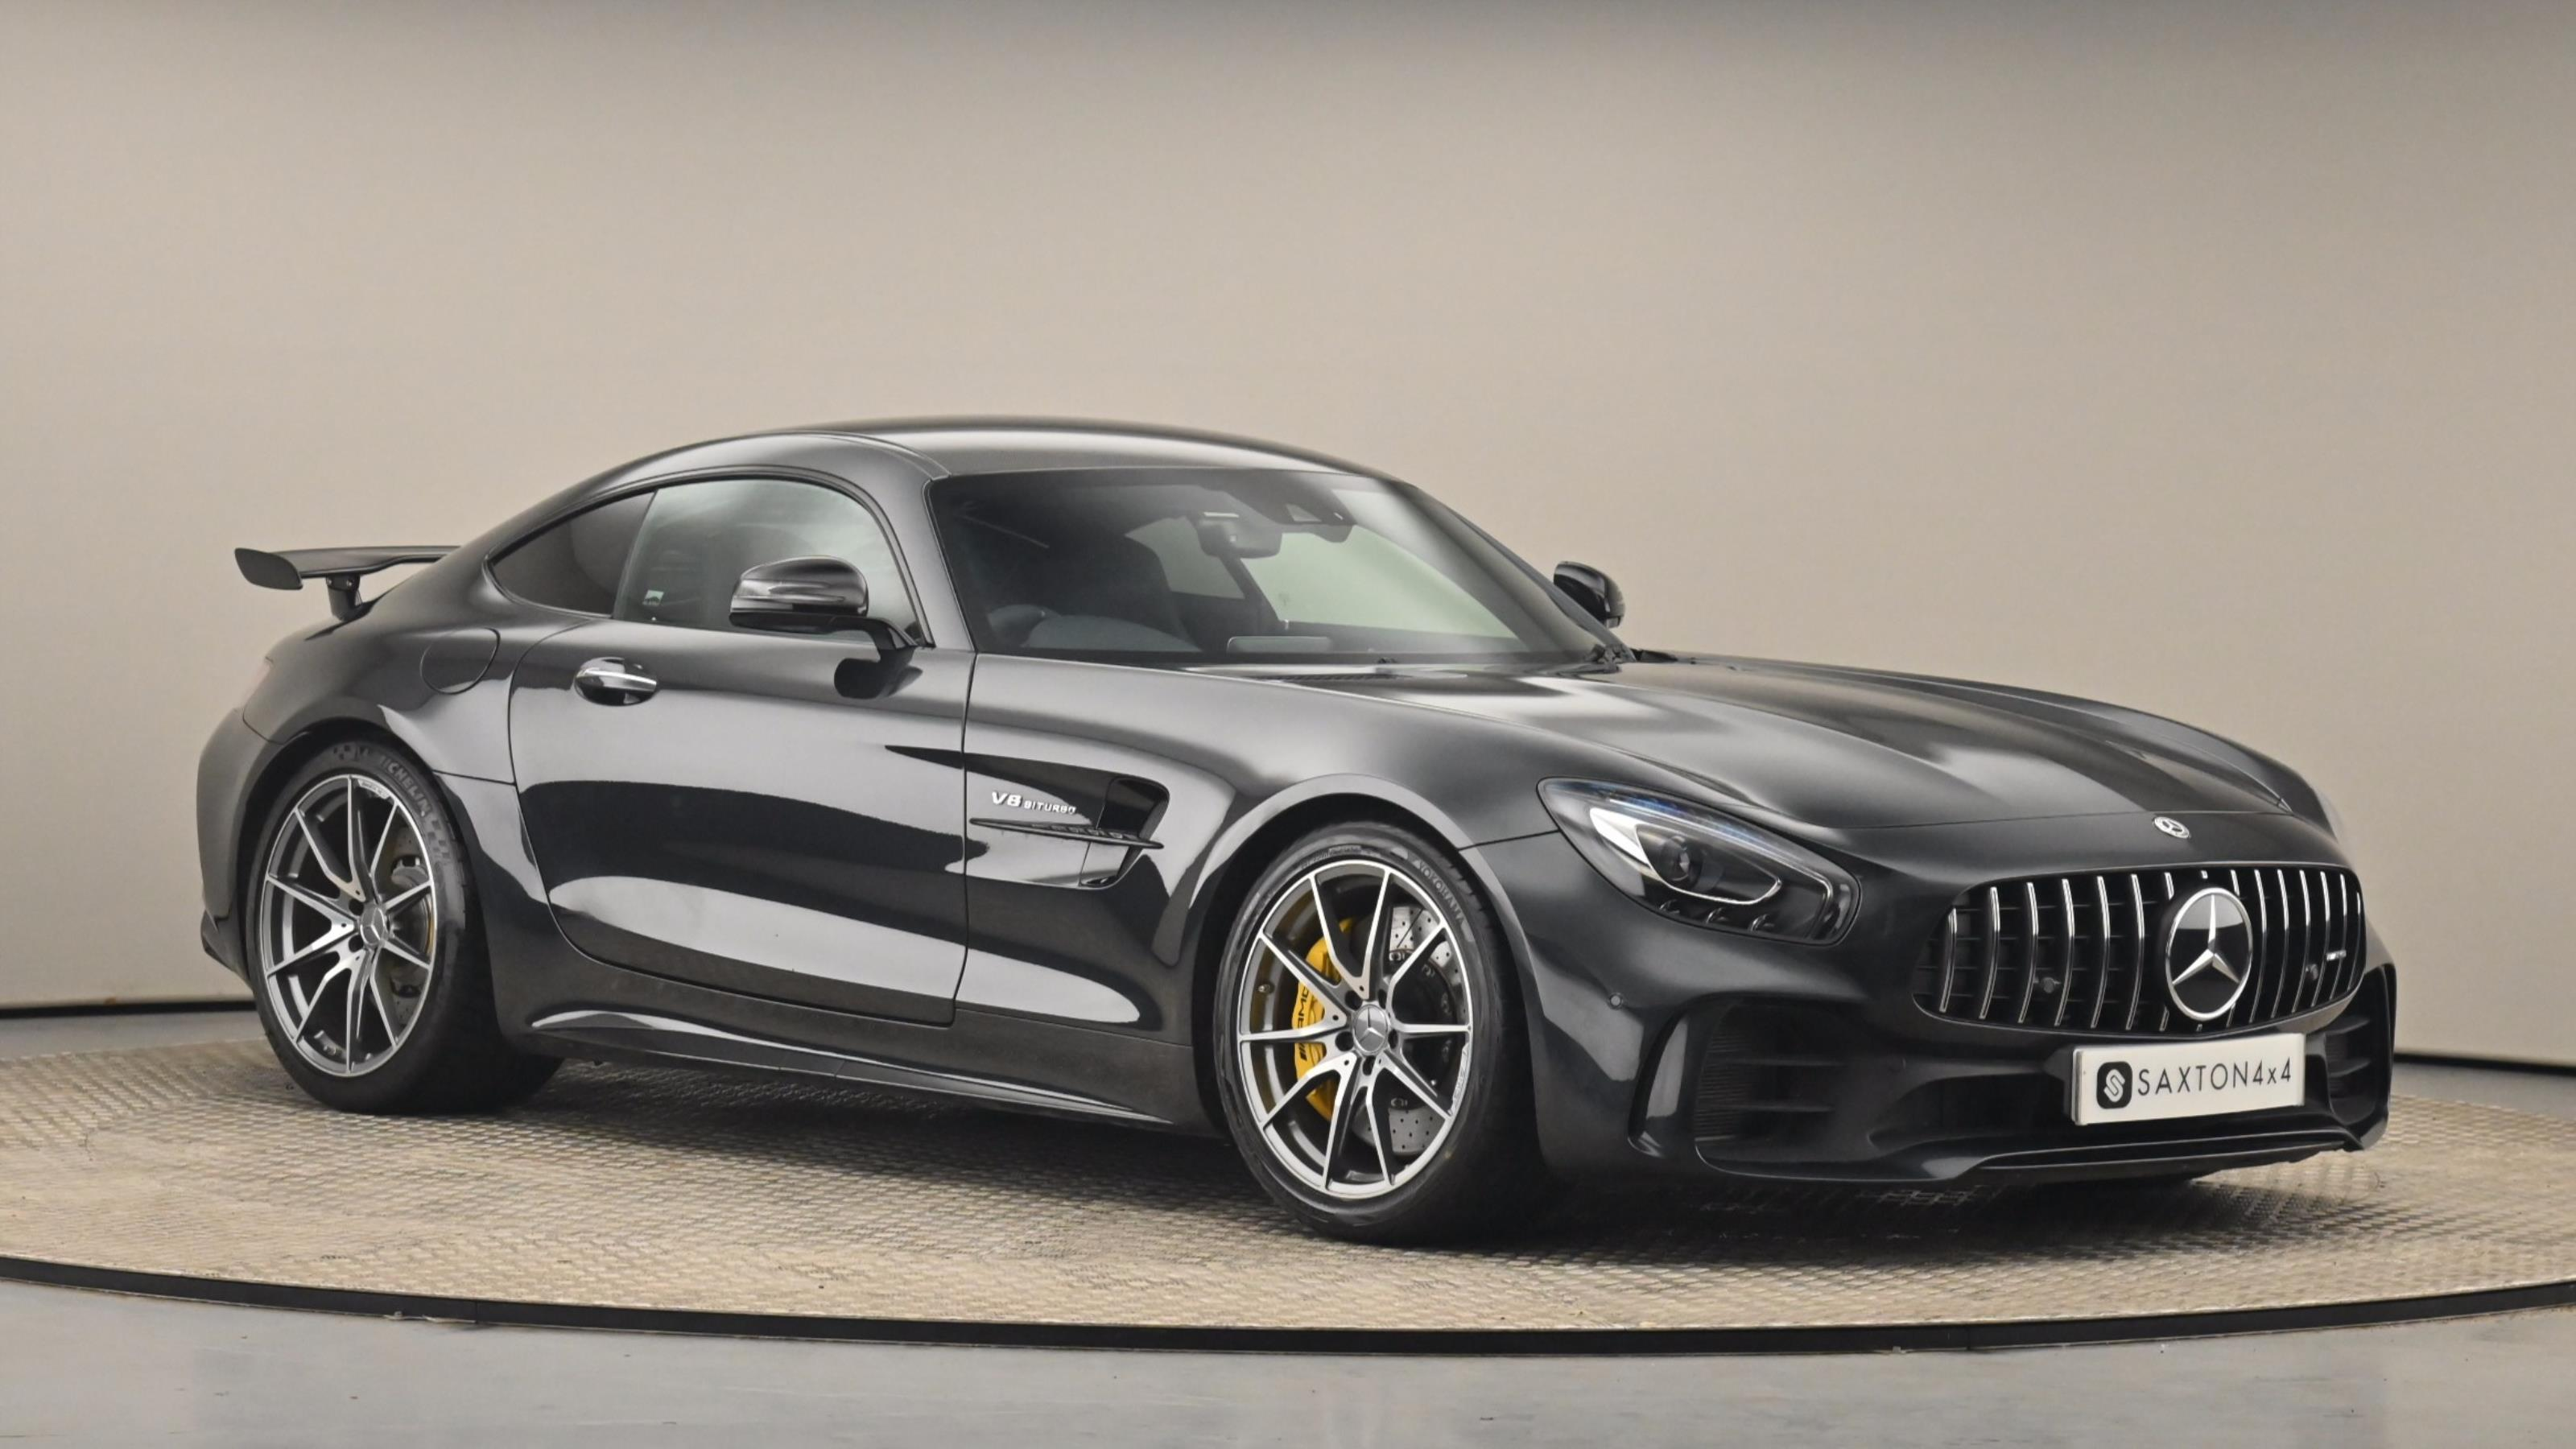 Used 2018 Mercedes-Benz AMG GT 4.0 V8 BiTurbo GPF R (Premium) SpdS DCT (s/s) 2dr BLACK at Saxton4x4